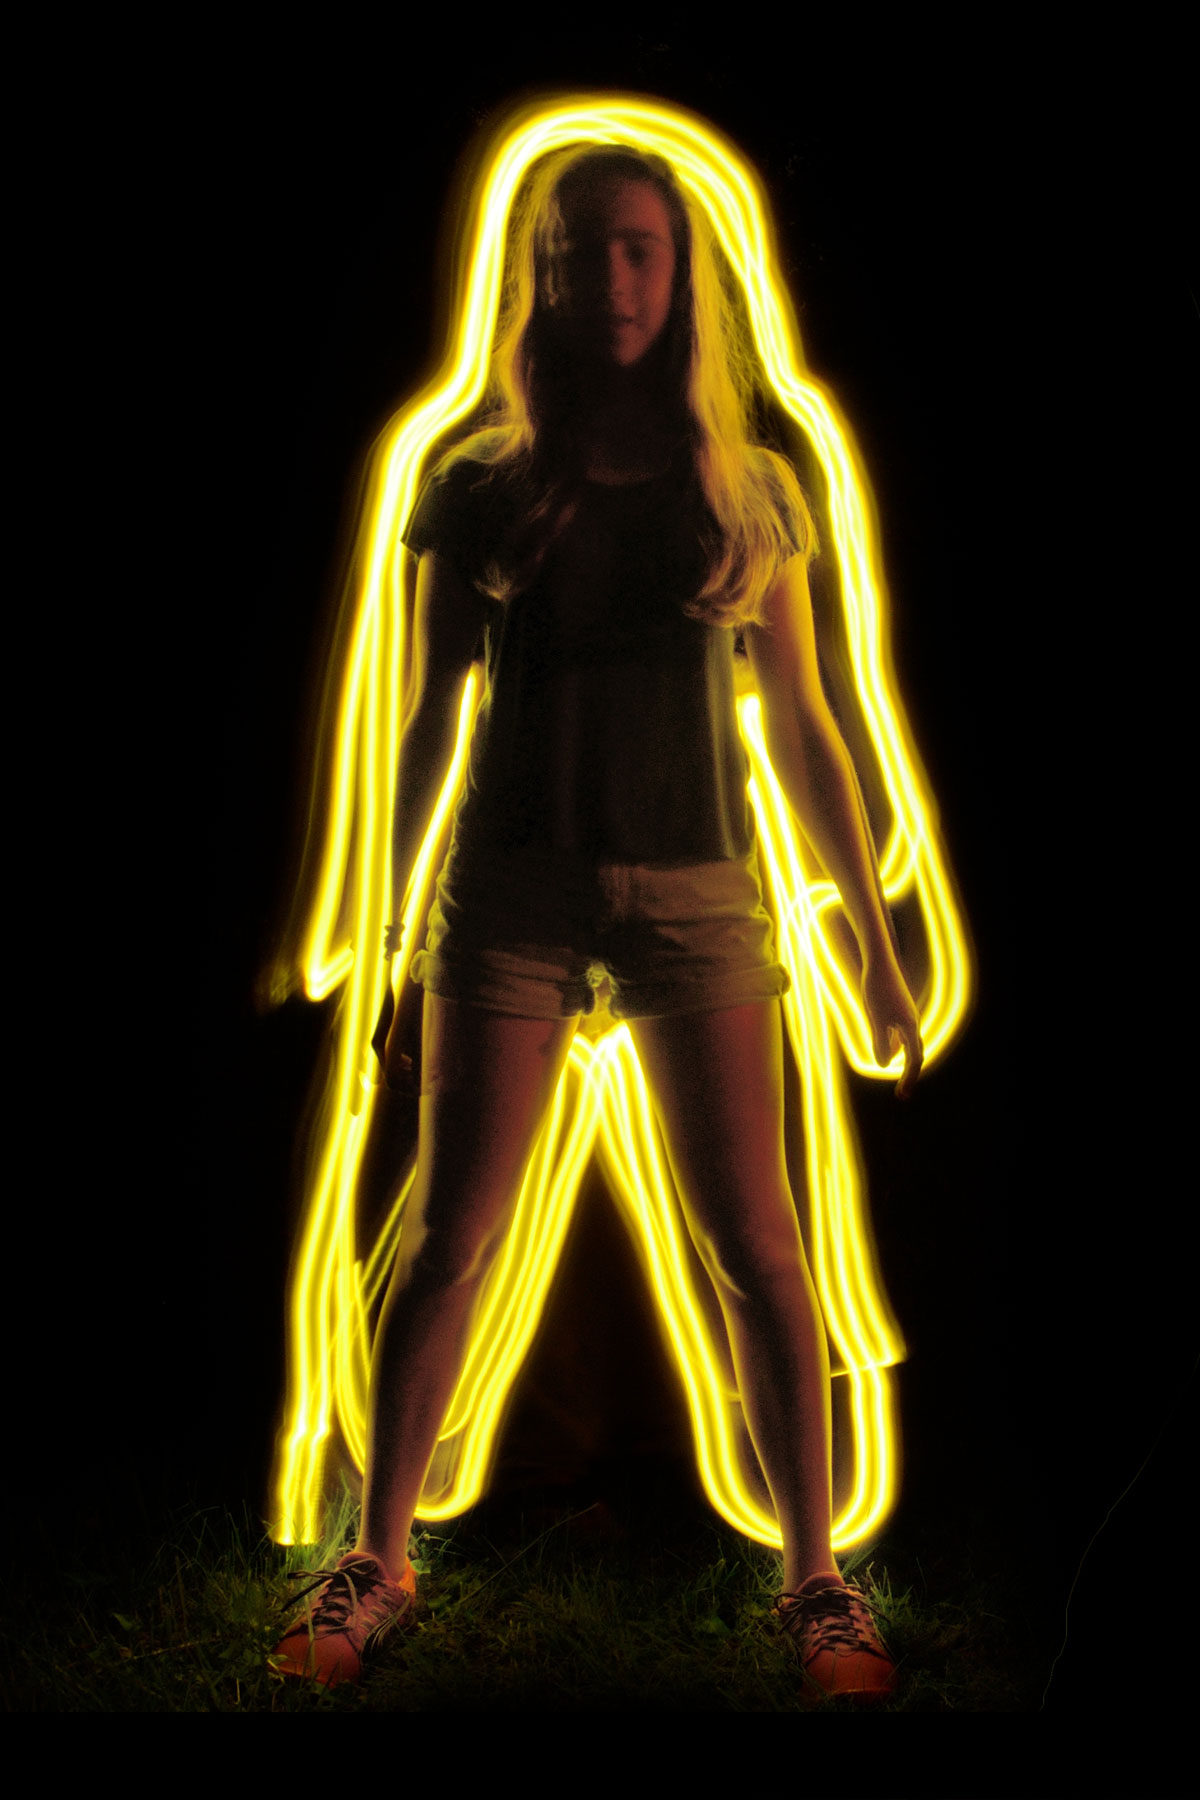 Photograph of Lanie surrounded by a yellow glow